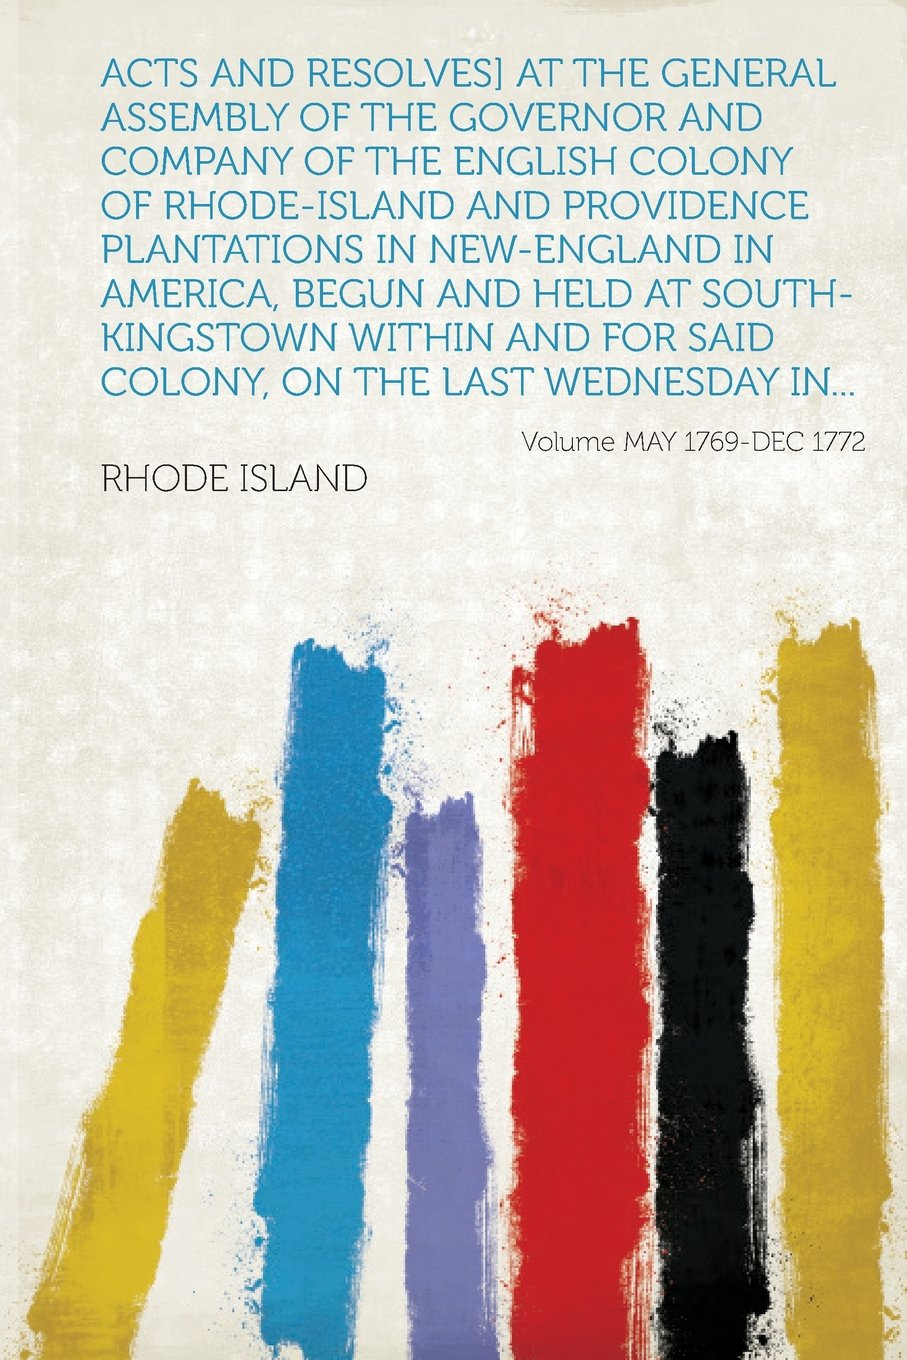 Acts and resolves] At the General Assembly of the governor and company of the English colony of Rhode-Island and Providence Plantations in New-England ... said colony, on .. Volume MAY 1769-DEC 1772 pdf